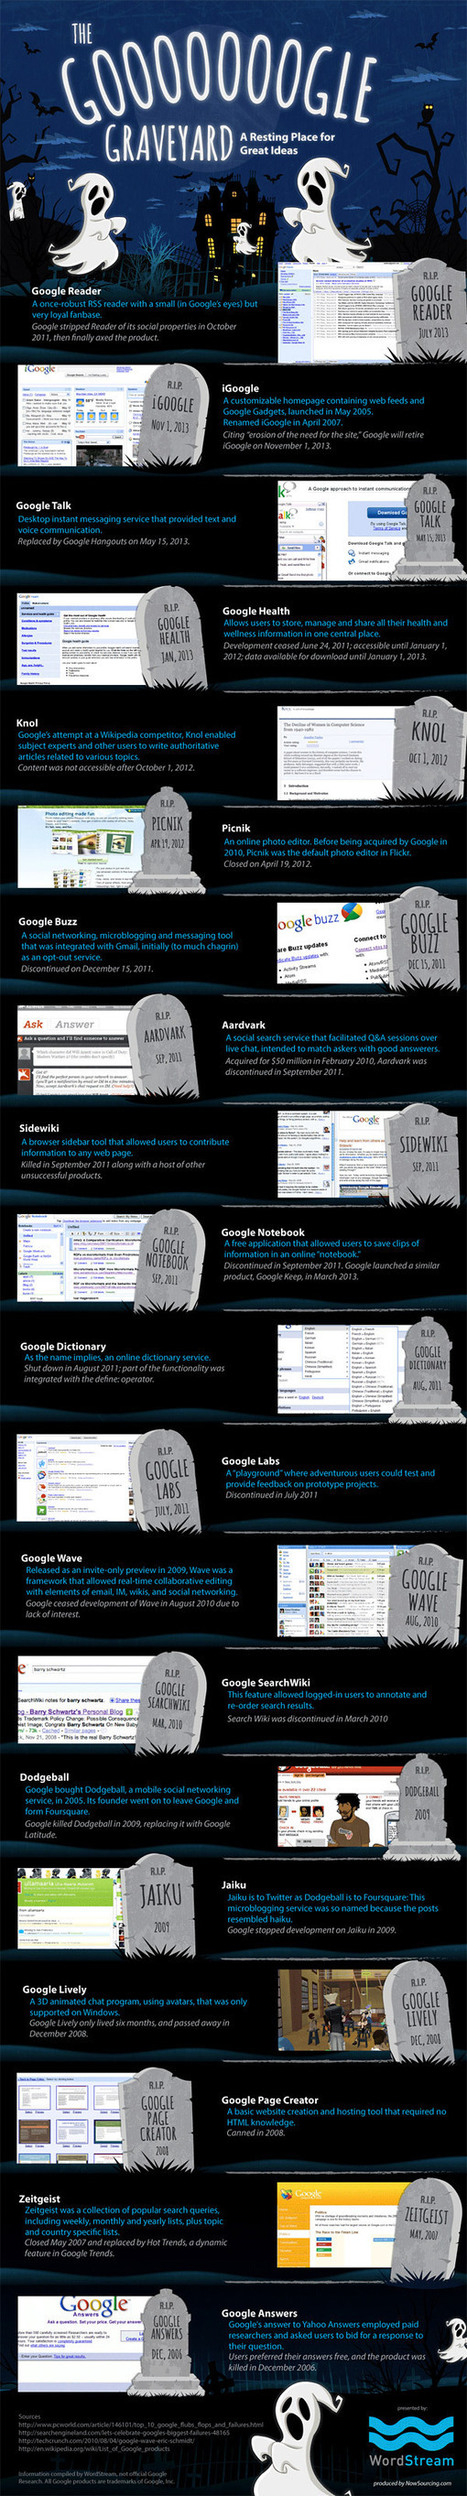 Google Graveyard [Infographic] | Social Media and its influence | Scoop.it